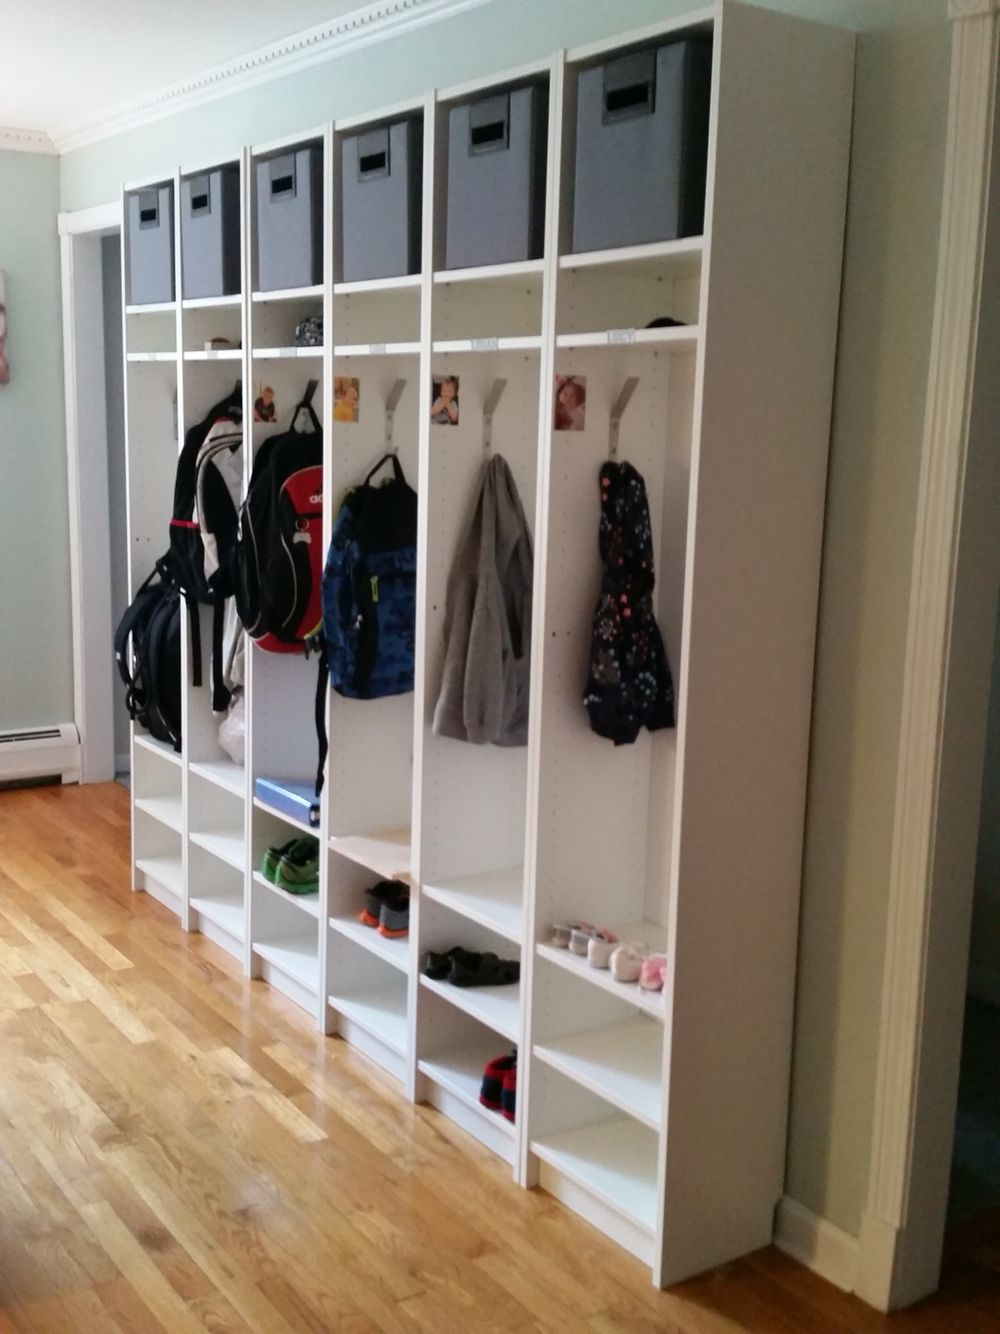 ikea hack billy bookcases turned cubbies motherwood past projects pinterest inredning. Black Bedroom Furniture Sets. Home Design Ideas